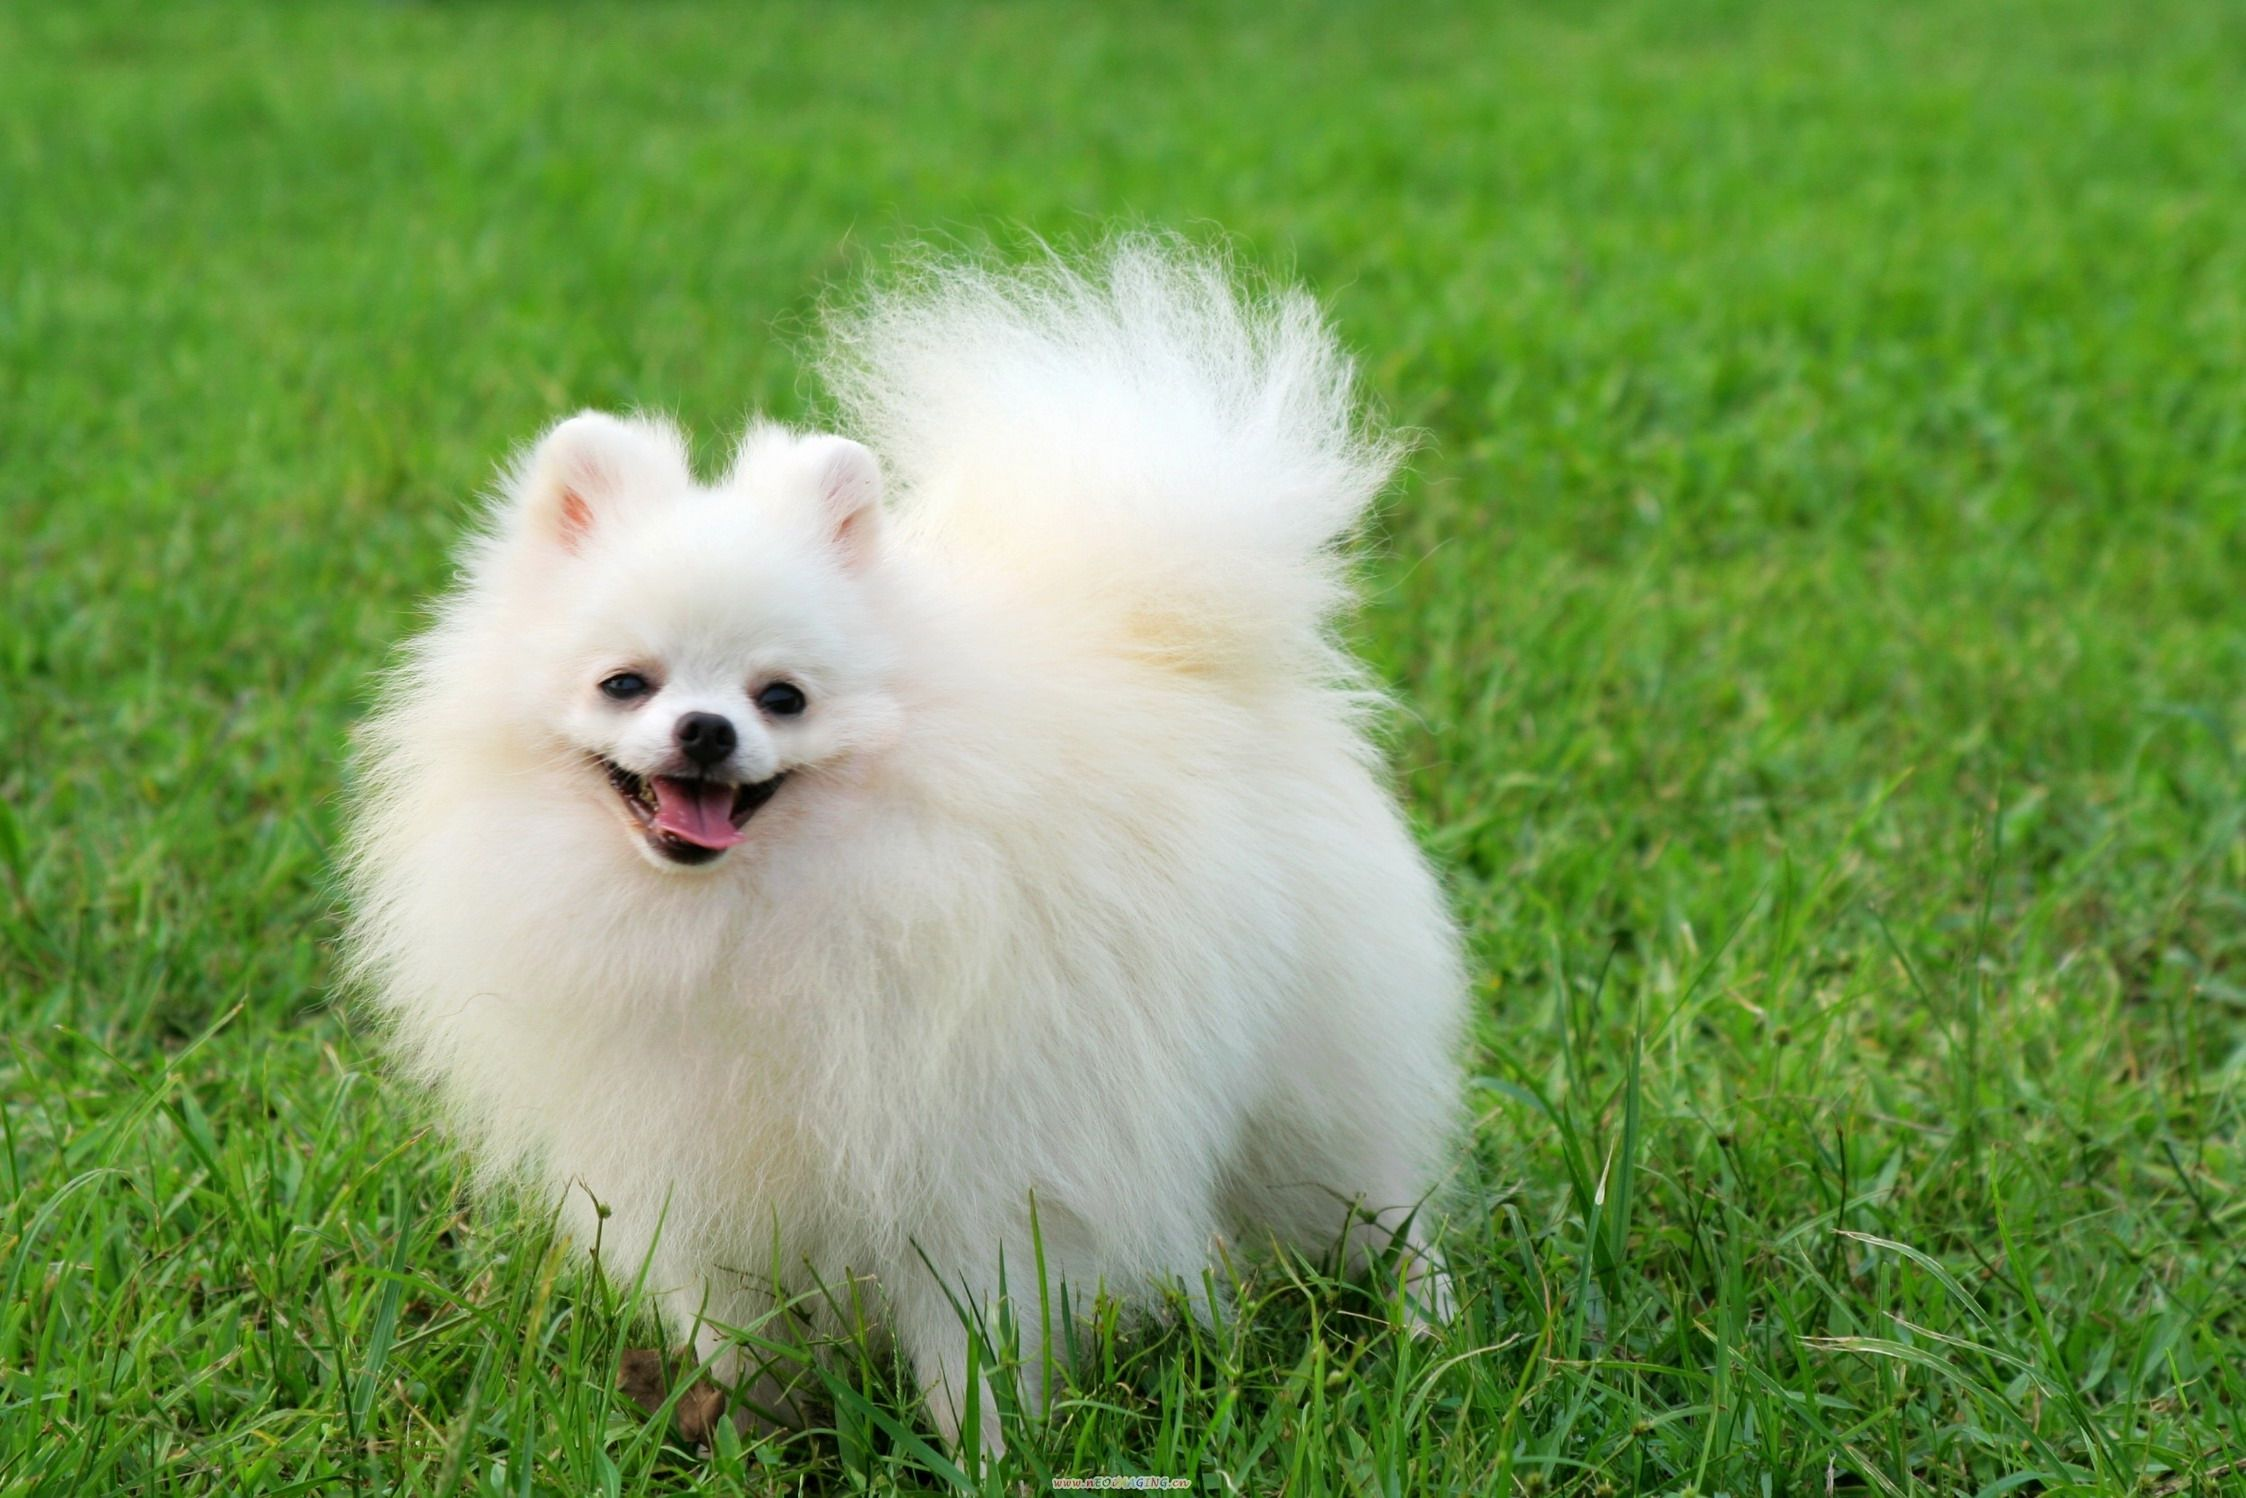 pomeranian dog breed information and pictures - HD2246×1498